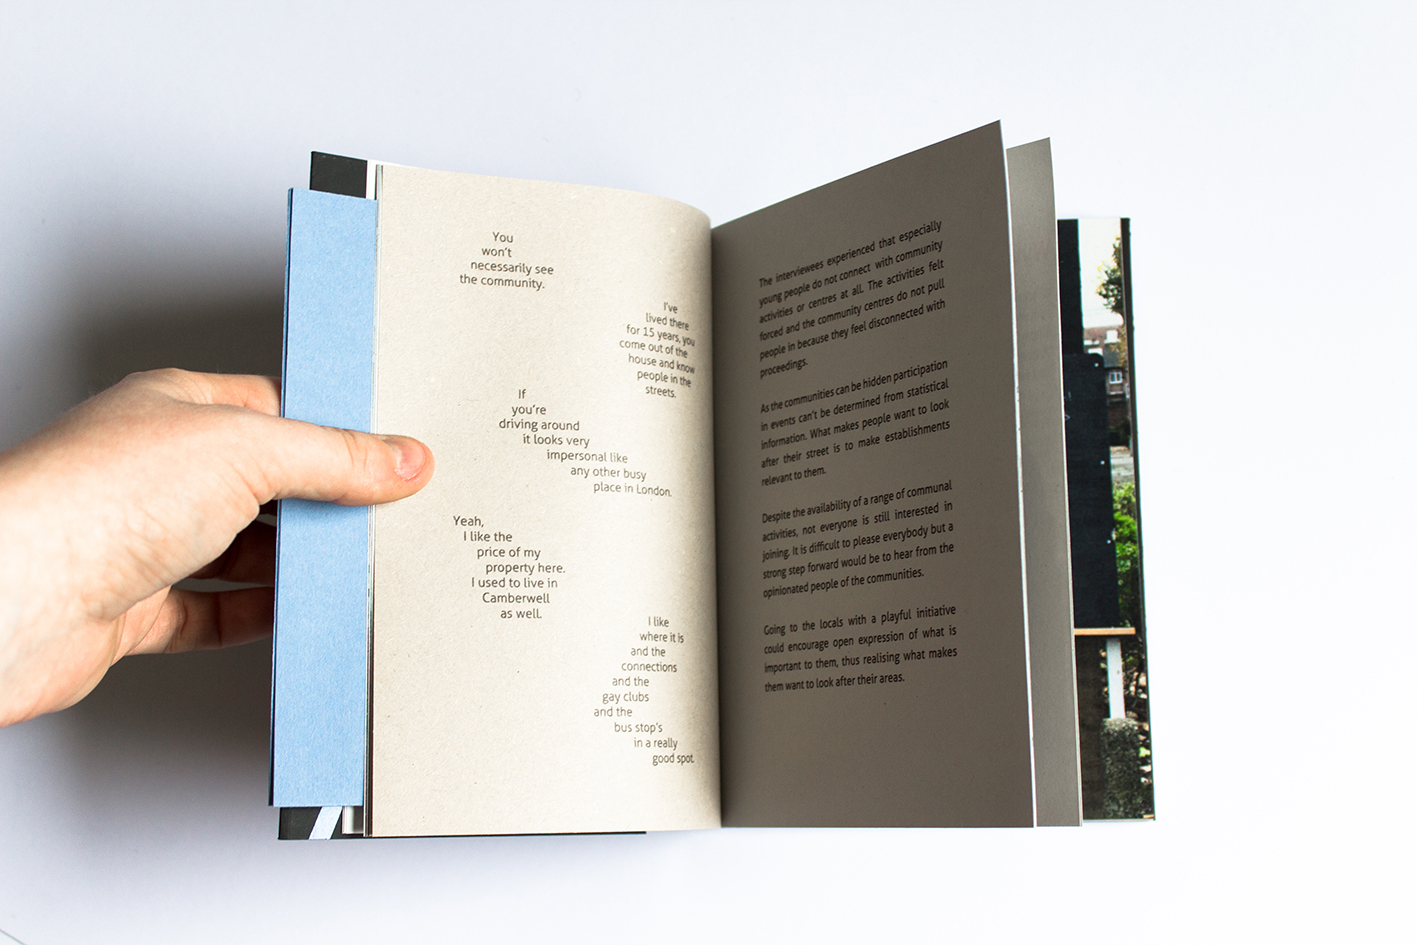 The book features locals' comments and interviews about their community.